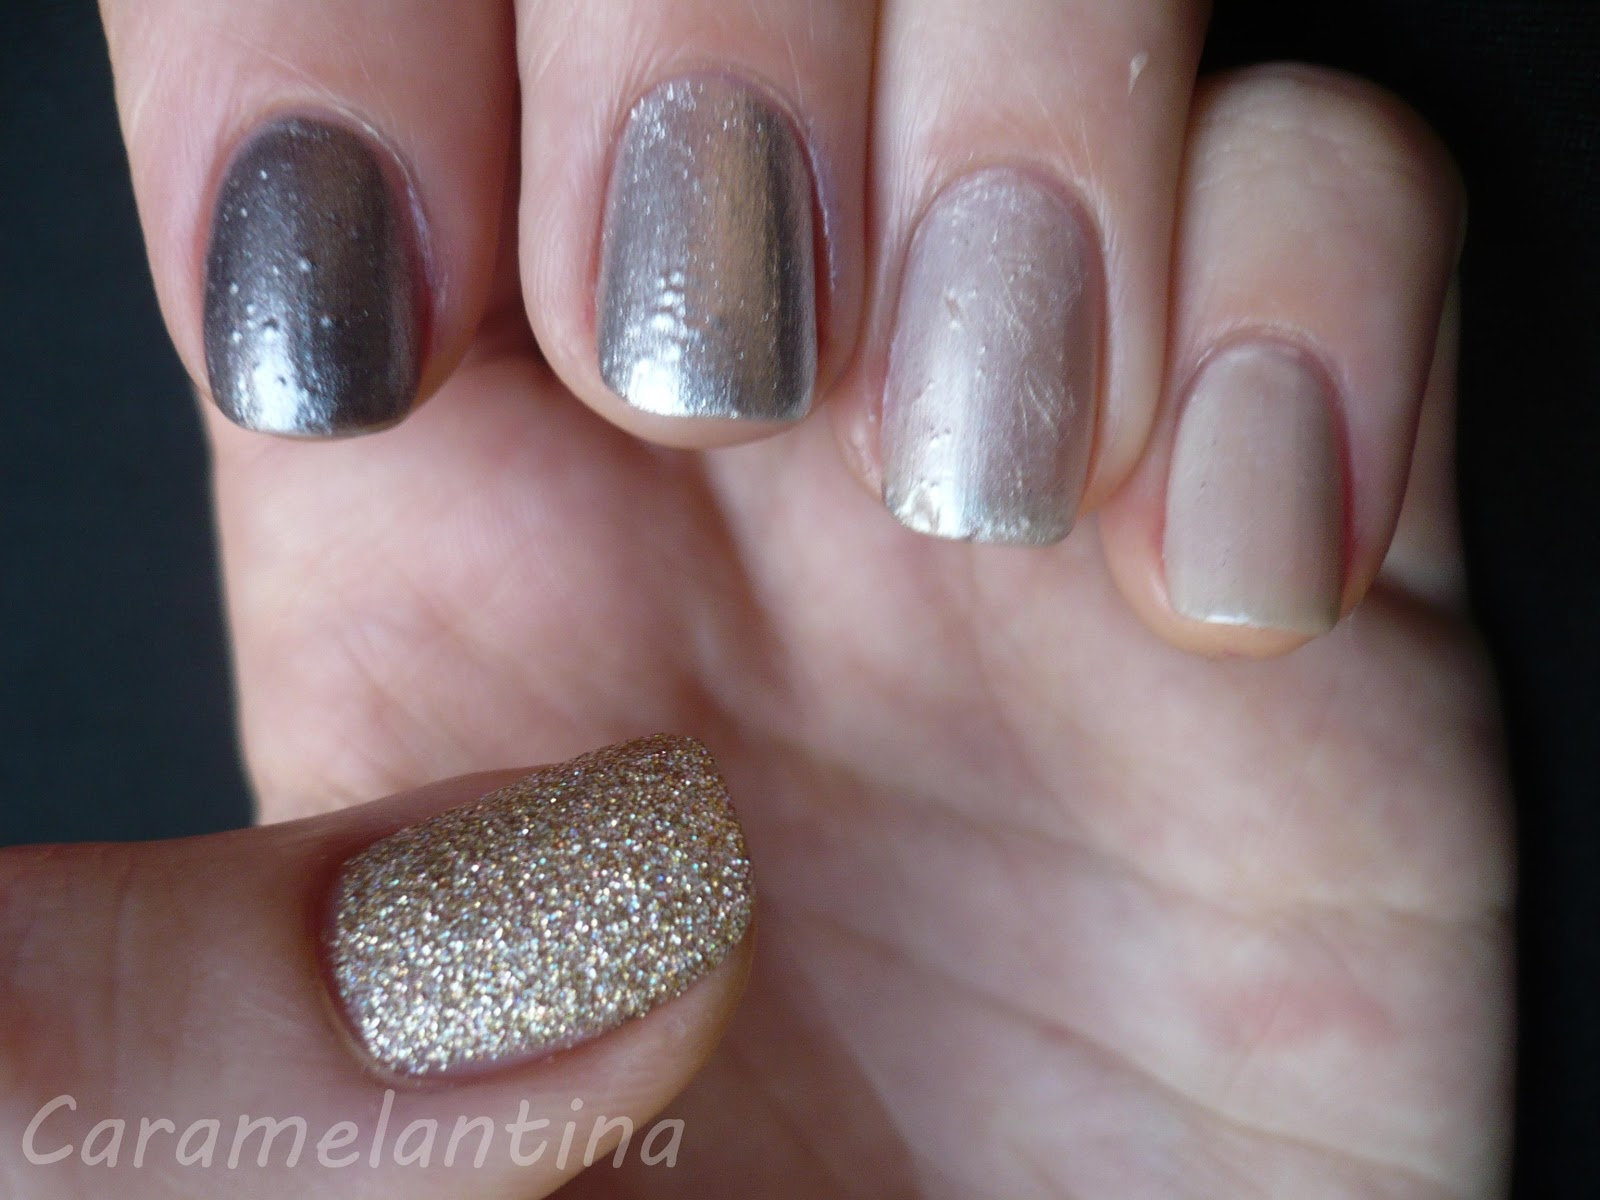 Colorama Plata, Chaivil, Impala Festa!, Regina Pluto, China Glaze I'm Not Lion